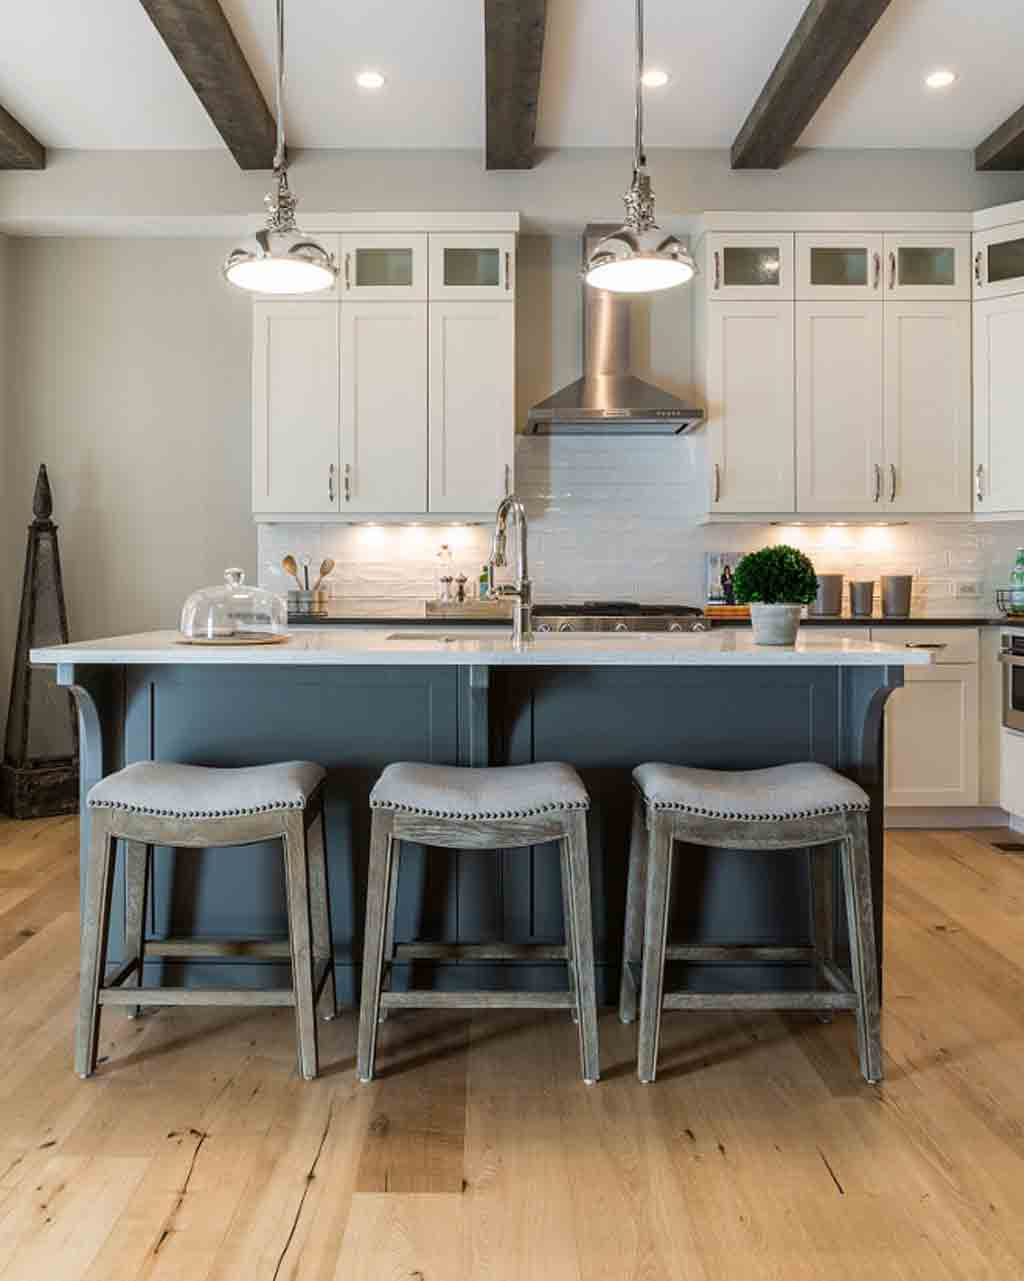 Dover White SW 6385 Review by Laura Rugh | Rugh Design